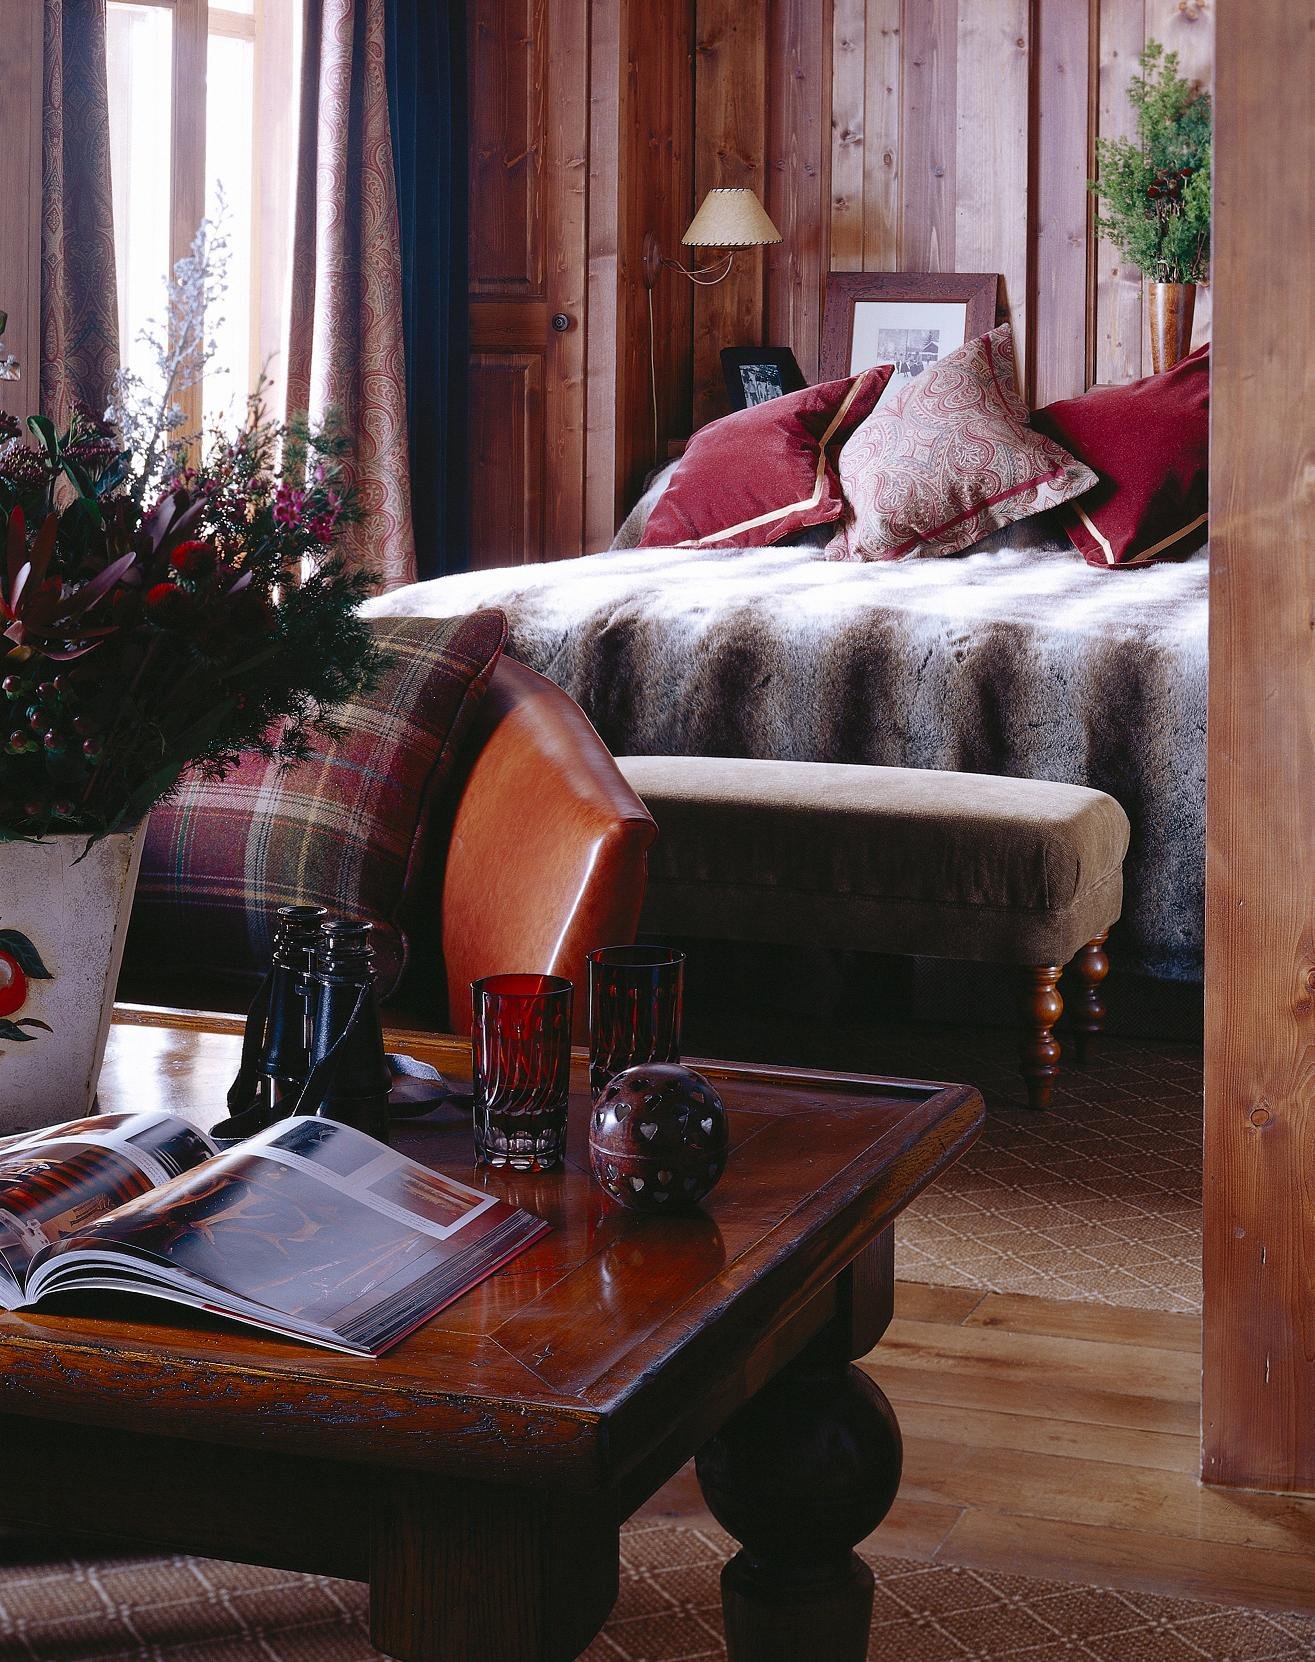 Hotel Les Barmes L Ours In Val D Isere France White